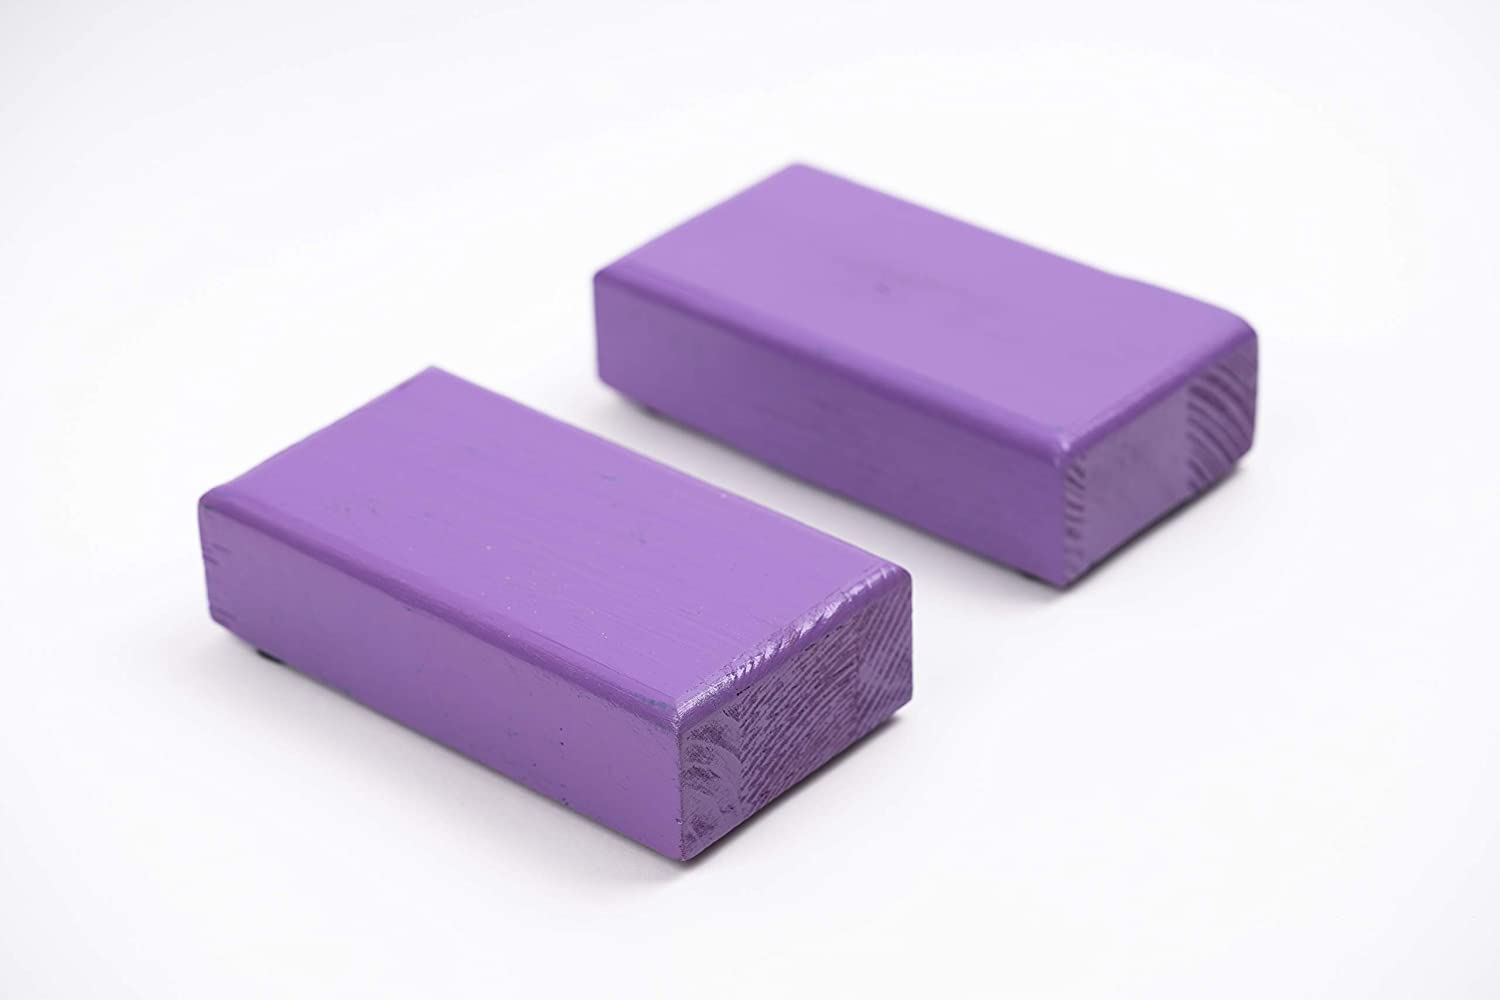 set of 2 blooks Hardwood Handstand Blocks Gymnastics Yoga Circus Parallettes Handstand Blocks for yoga and fitness Non slip Bottoms